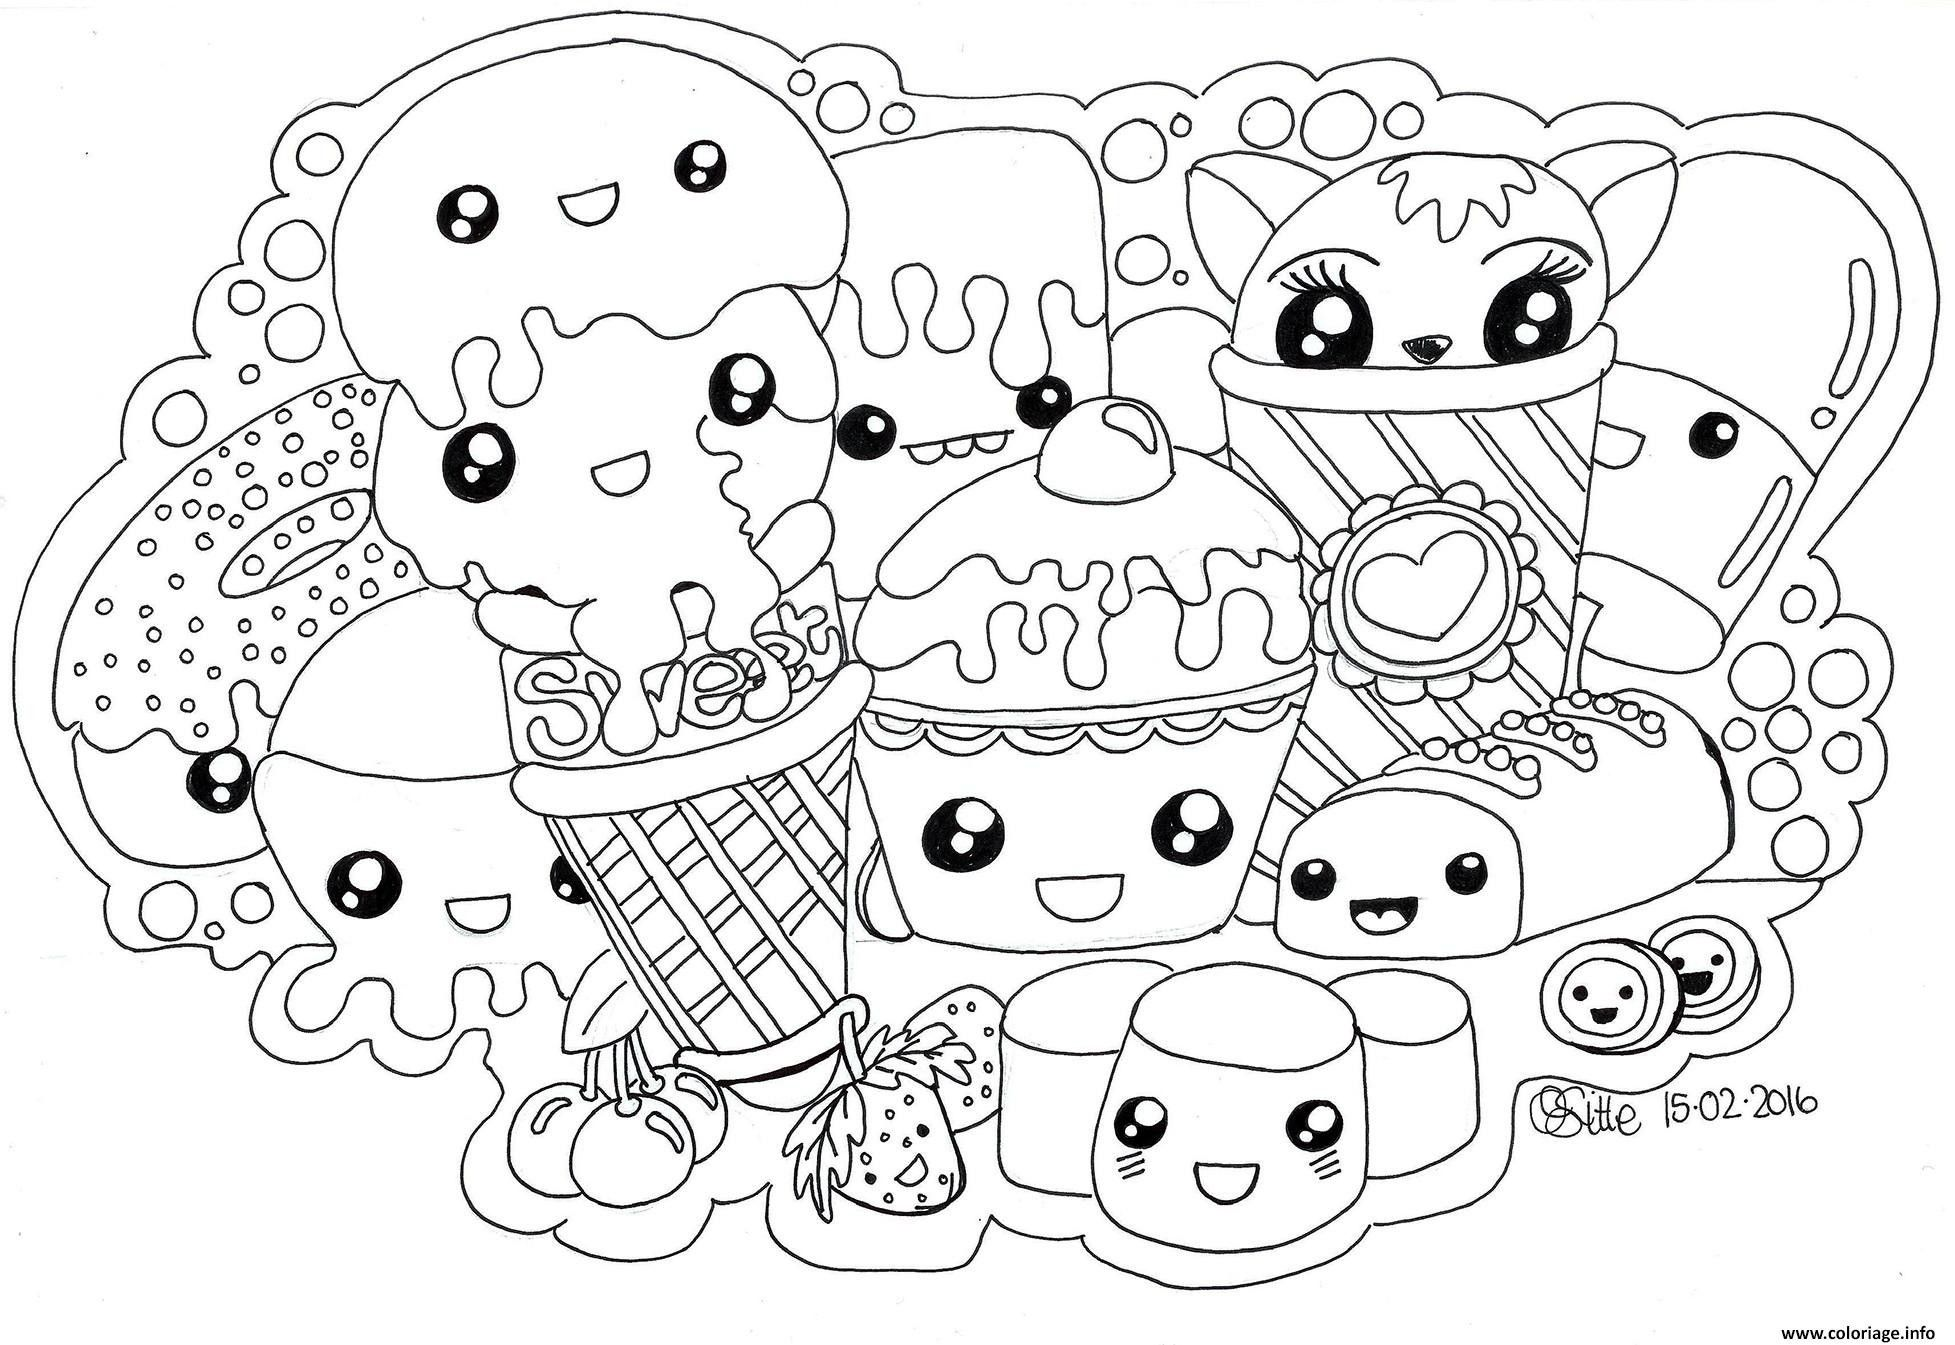 Coloring Unicorn Kawaii A Print L Duilawyerlosangeles Doodle Coloring Unicorn Coloring Pages Cute Coloring Pages